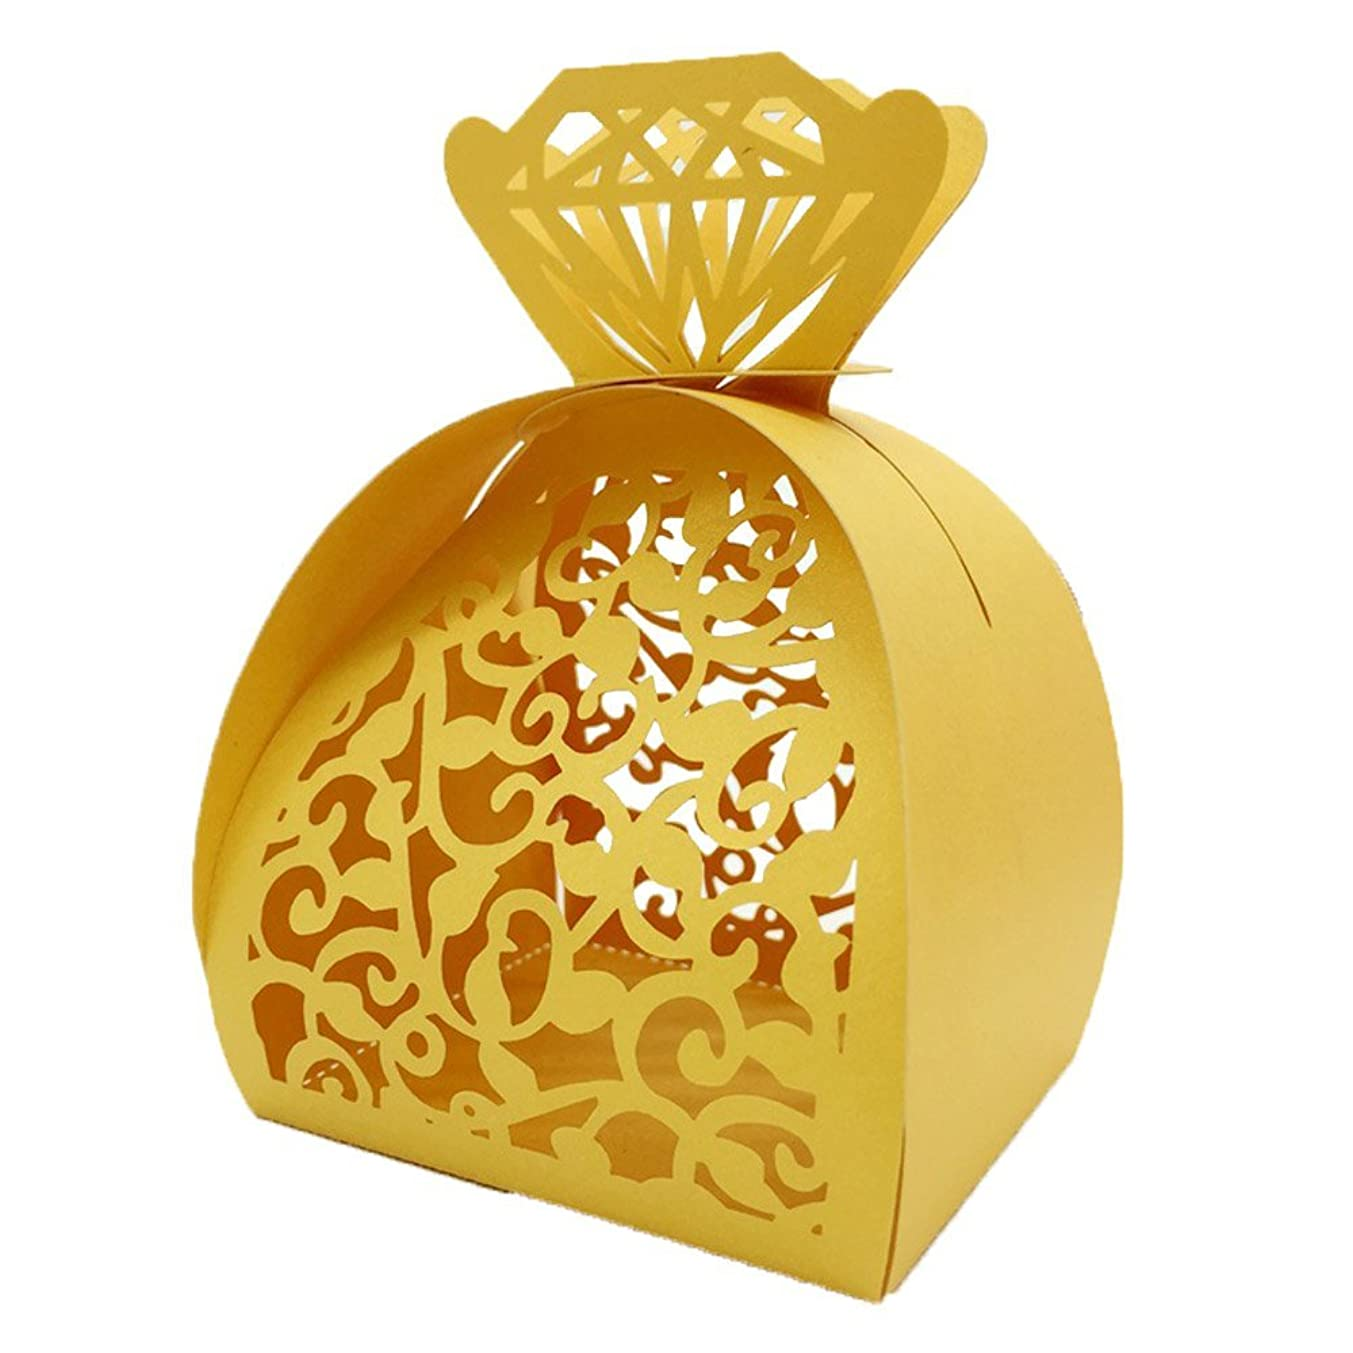 WOMHOPE? 50 Pcs - Jewelry Lock Vine Hollow Laser Cut Roses Flowers Wedding Candy Box Chocolate Candy Wrappers Holders Party Favors for Bridal Shower,Wedding,Party,Birthday Gift (Gold)